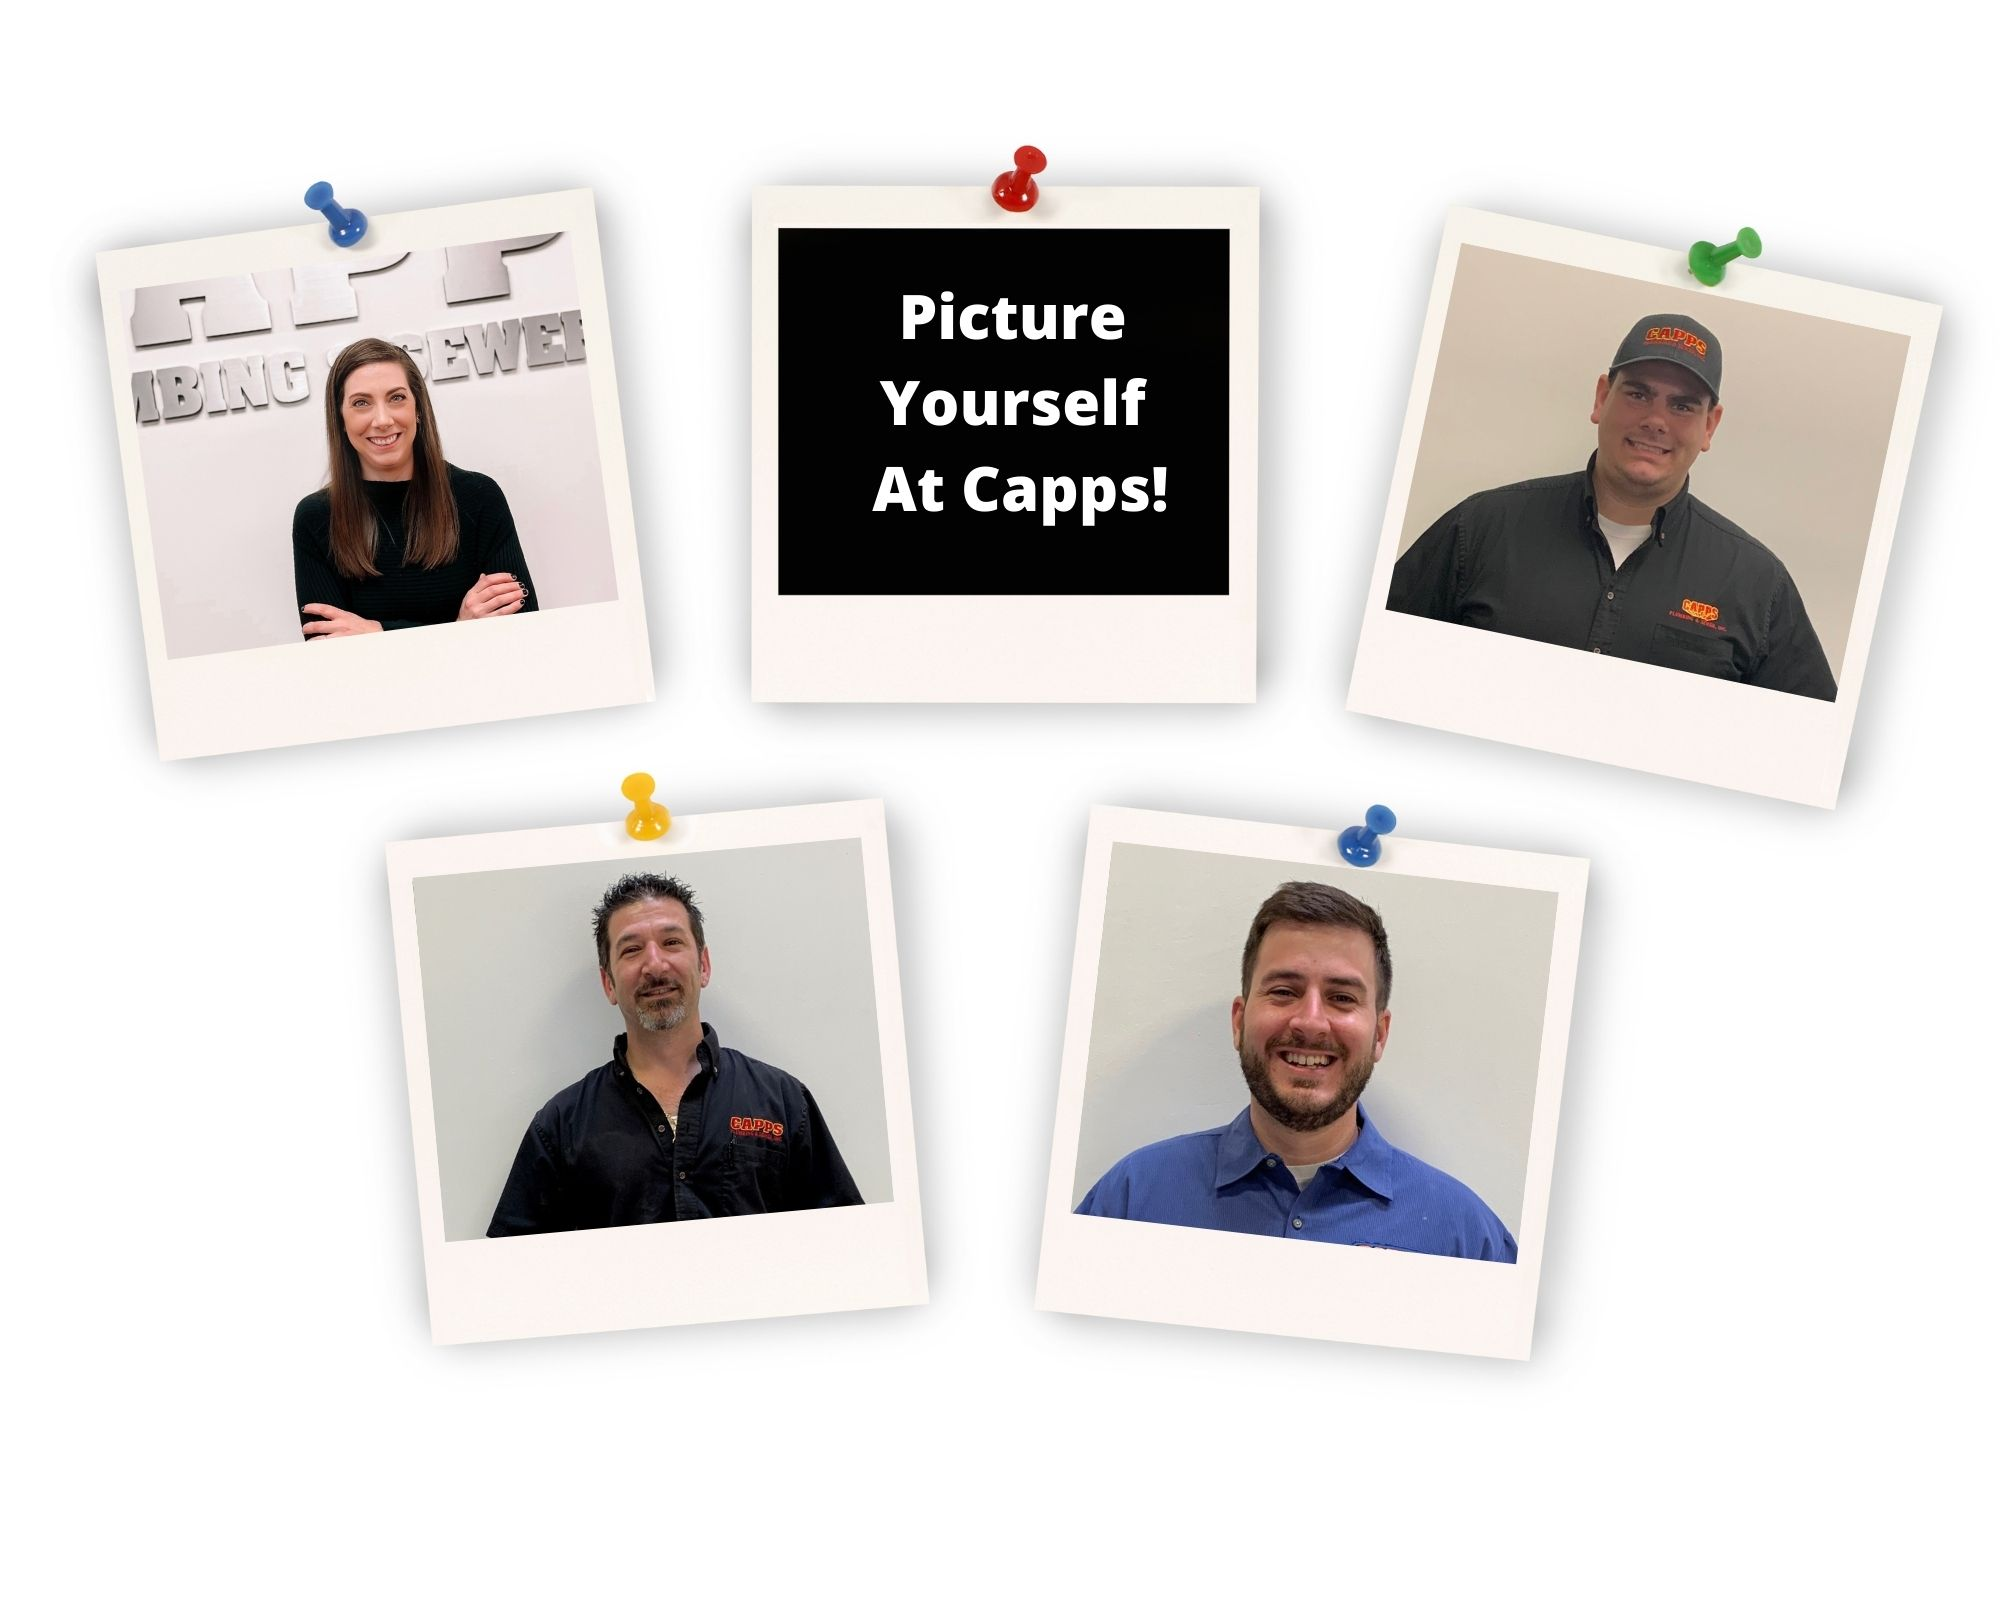 Capps Staff Polaroid Photos One says picure yourself at capps.